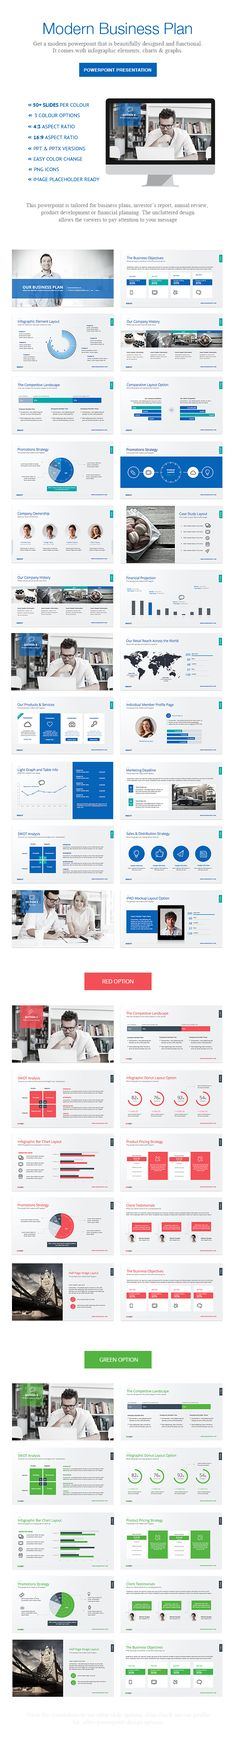 Business Plan Powerpointew23434141 by Design District, via Behance1123123